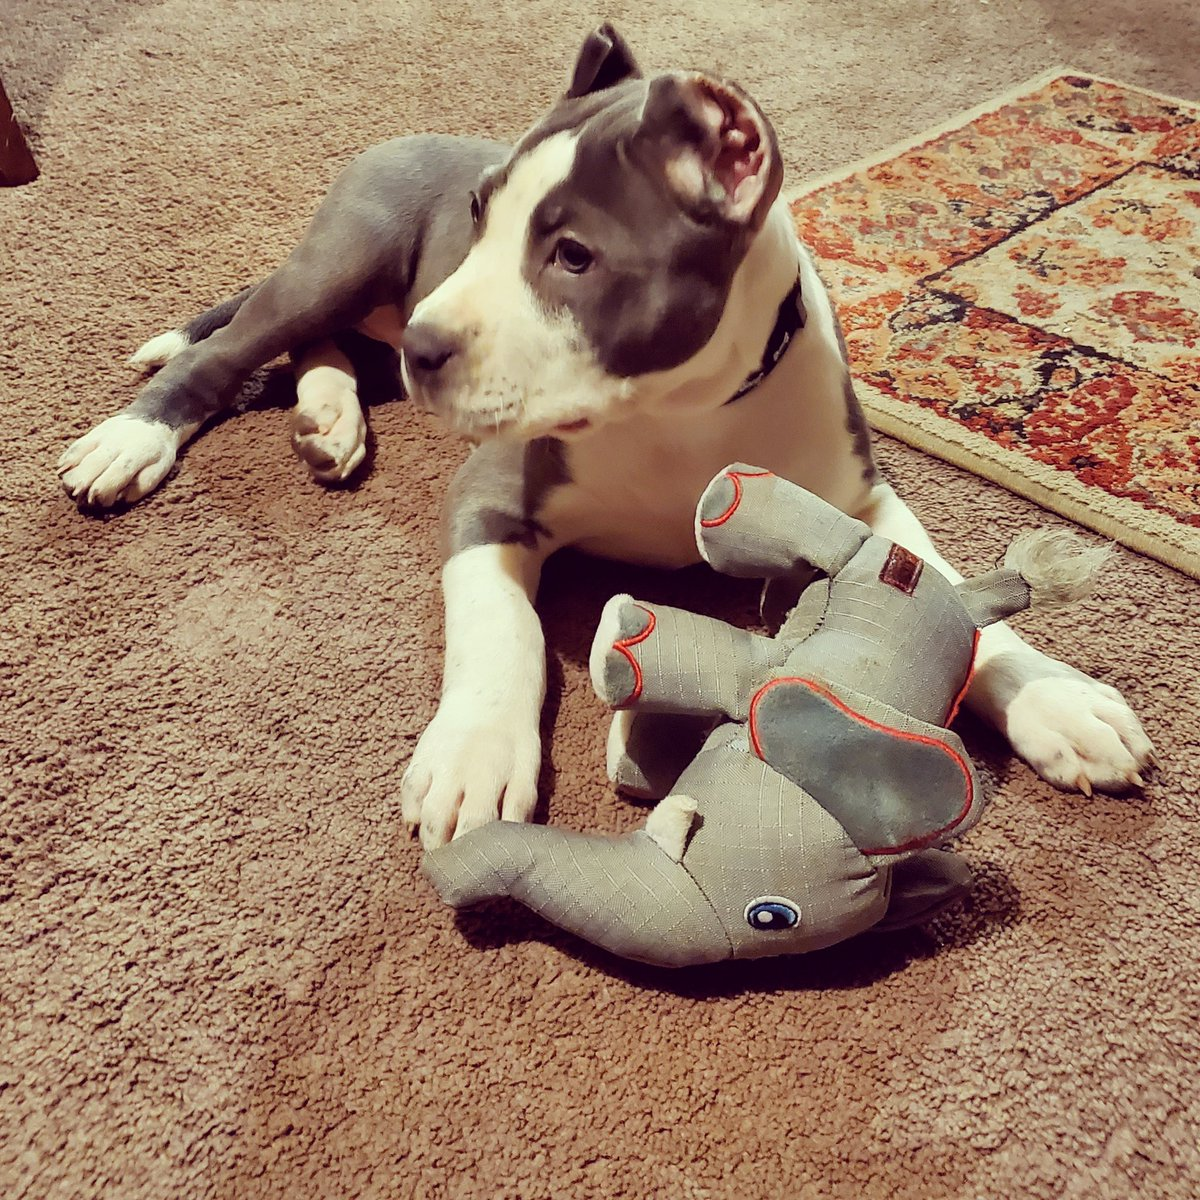 New addition to the family ?? Yall got name for this big girl?  https://www.instagram.com/controlledkhaoskennels/ … #puppy #xlbully pic.twitter.com/whD11aPjzI